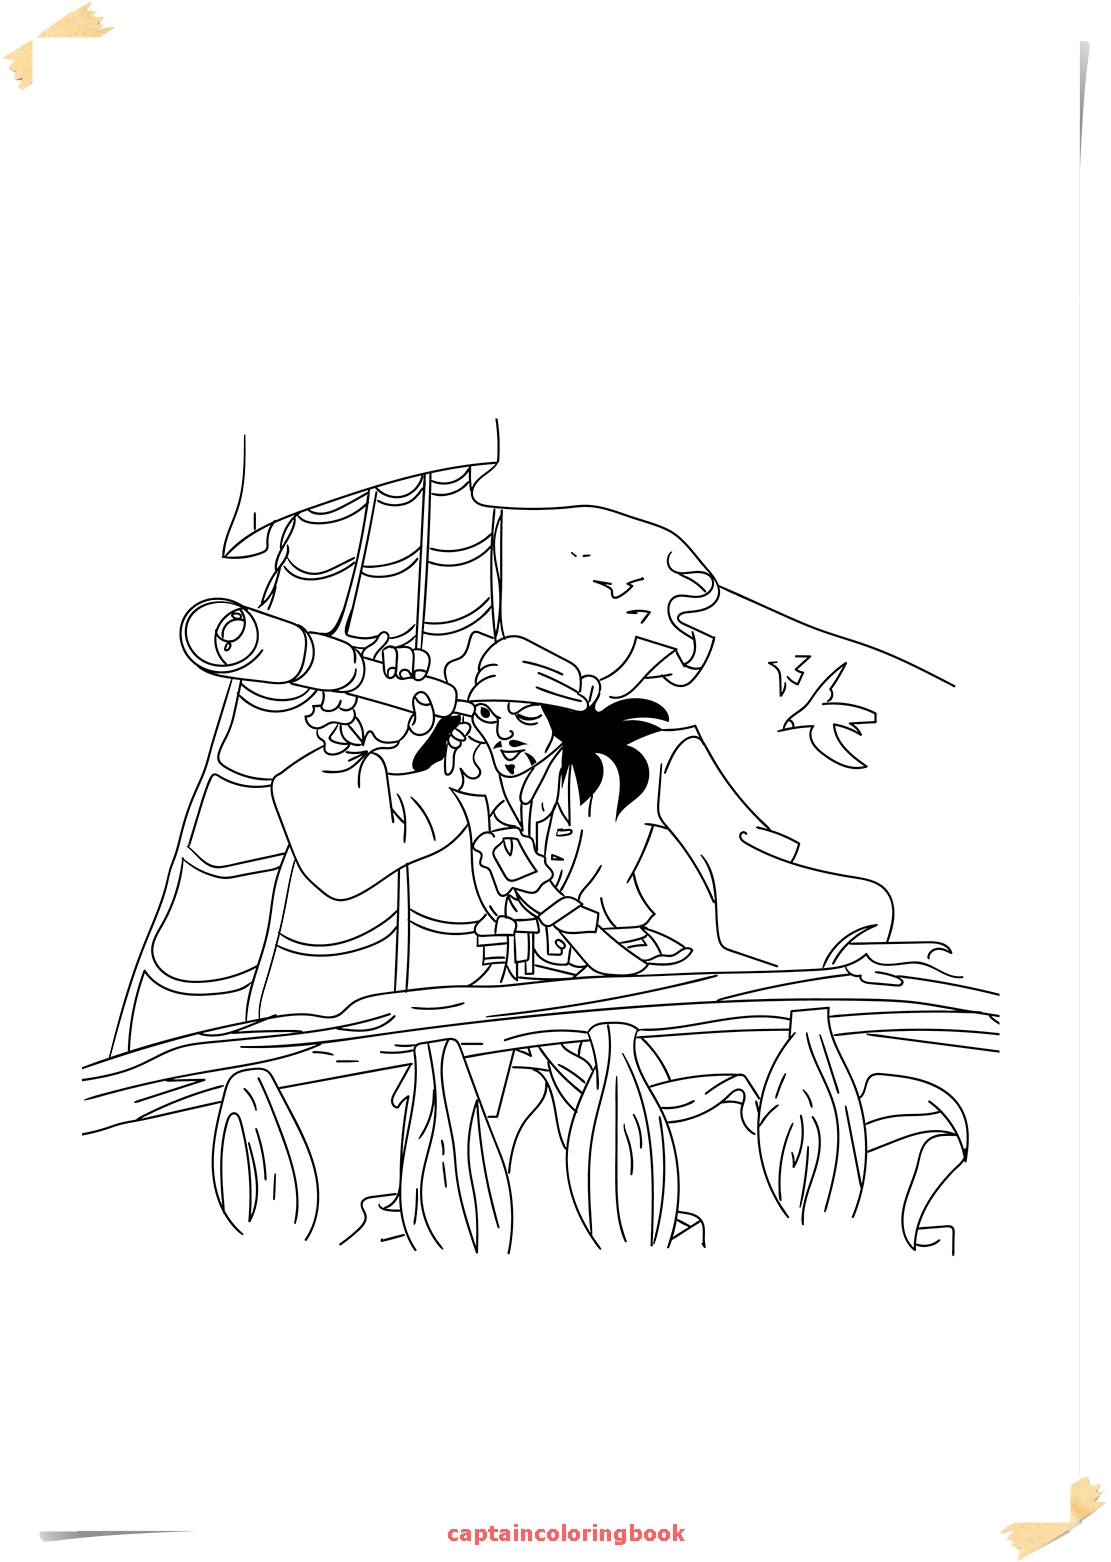 Captain Jack Sparrow Coloring Pages download - Coloring Page